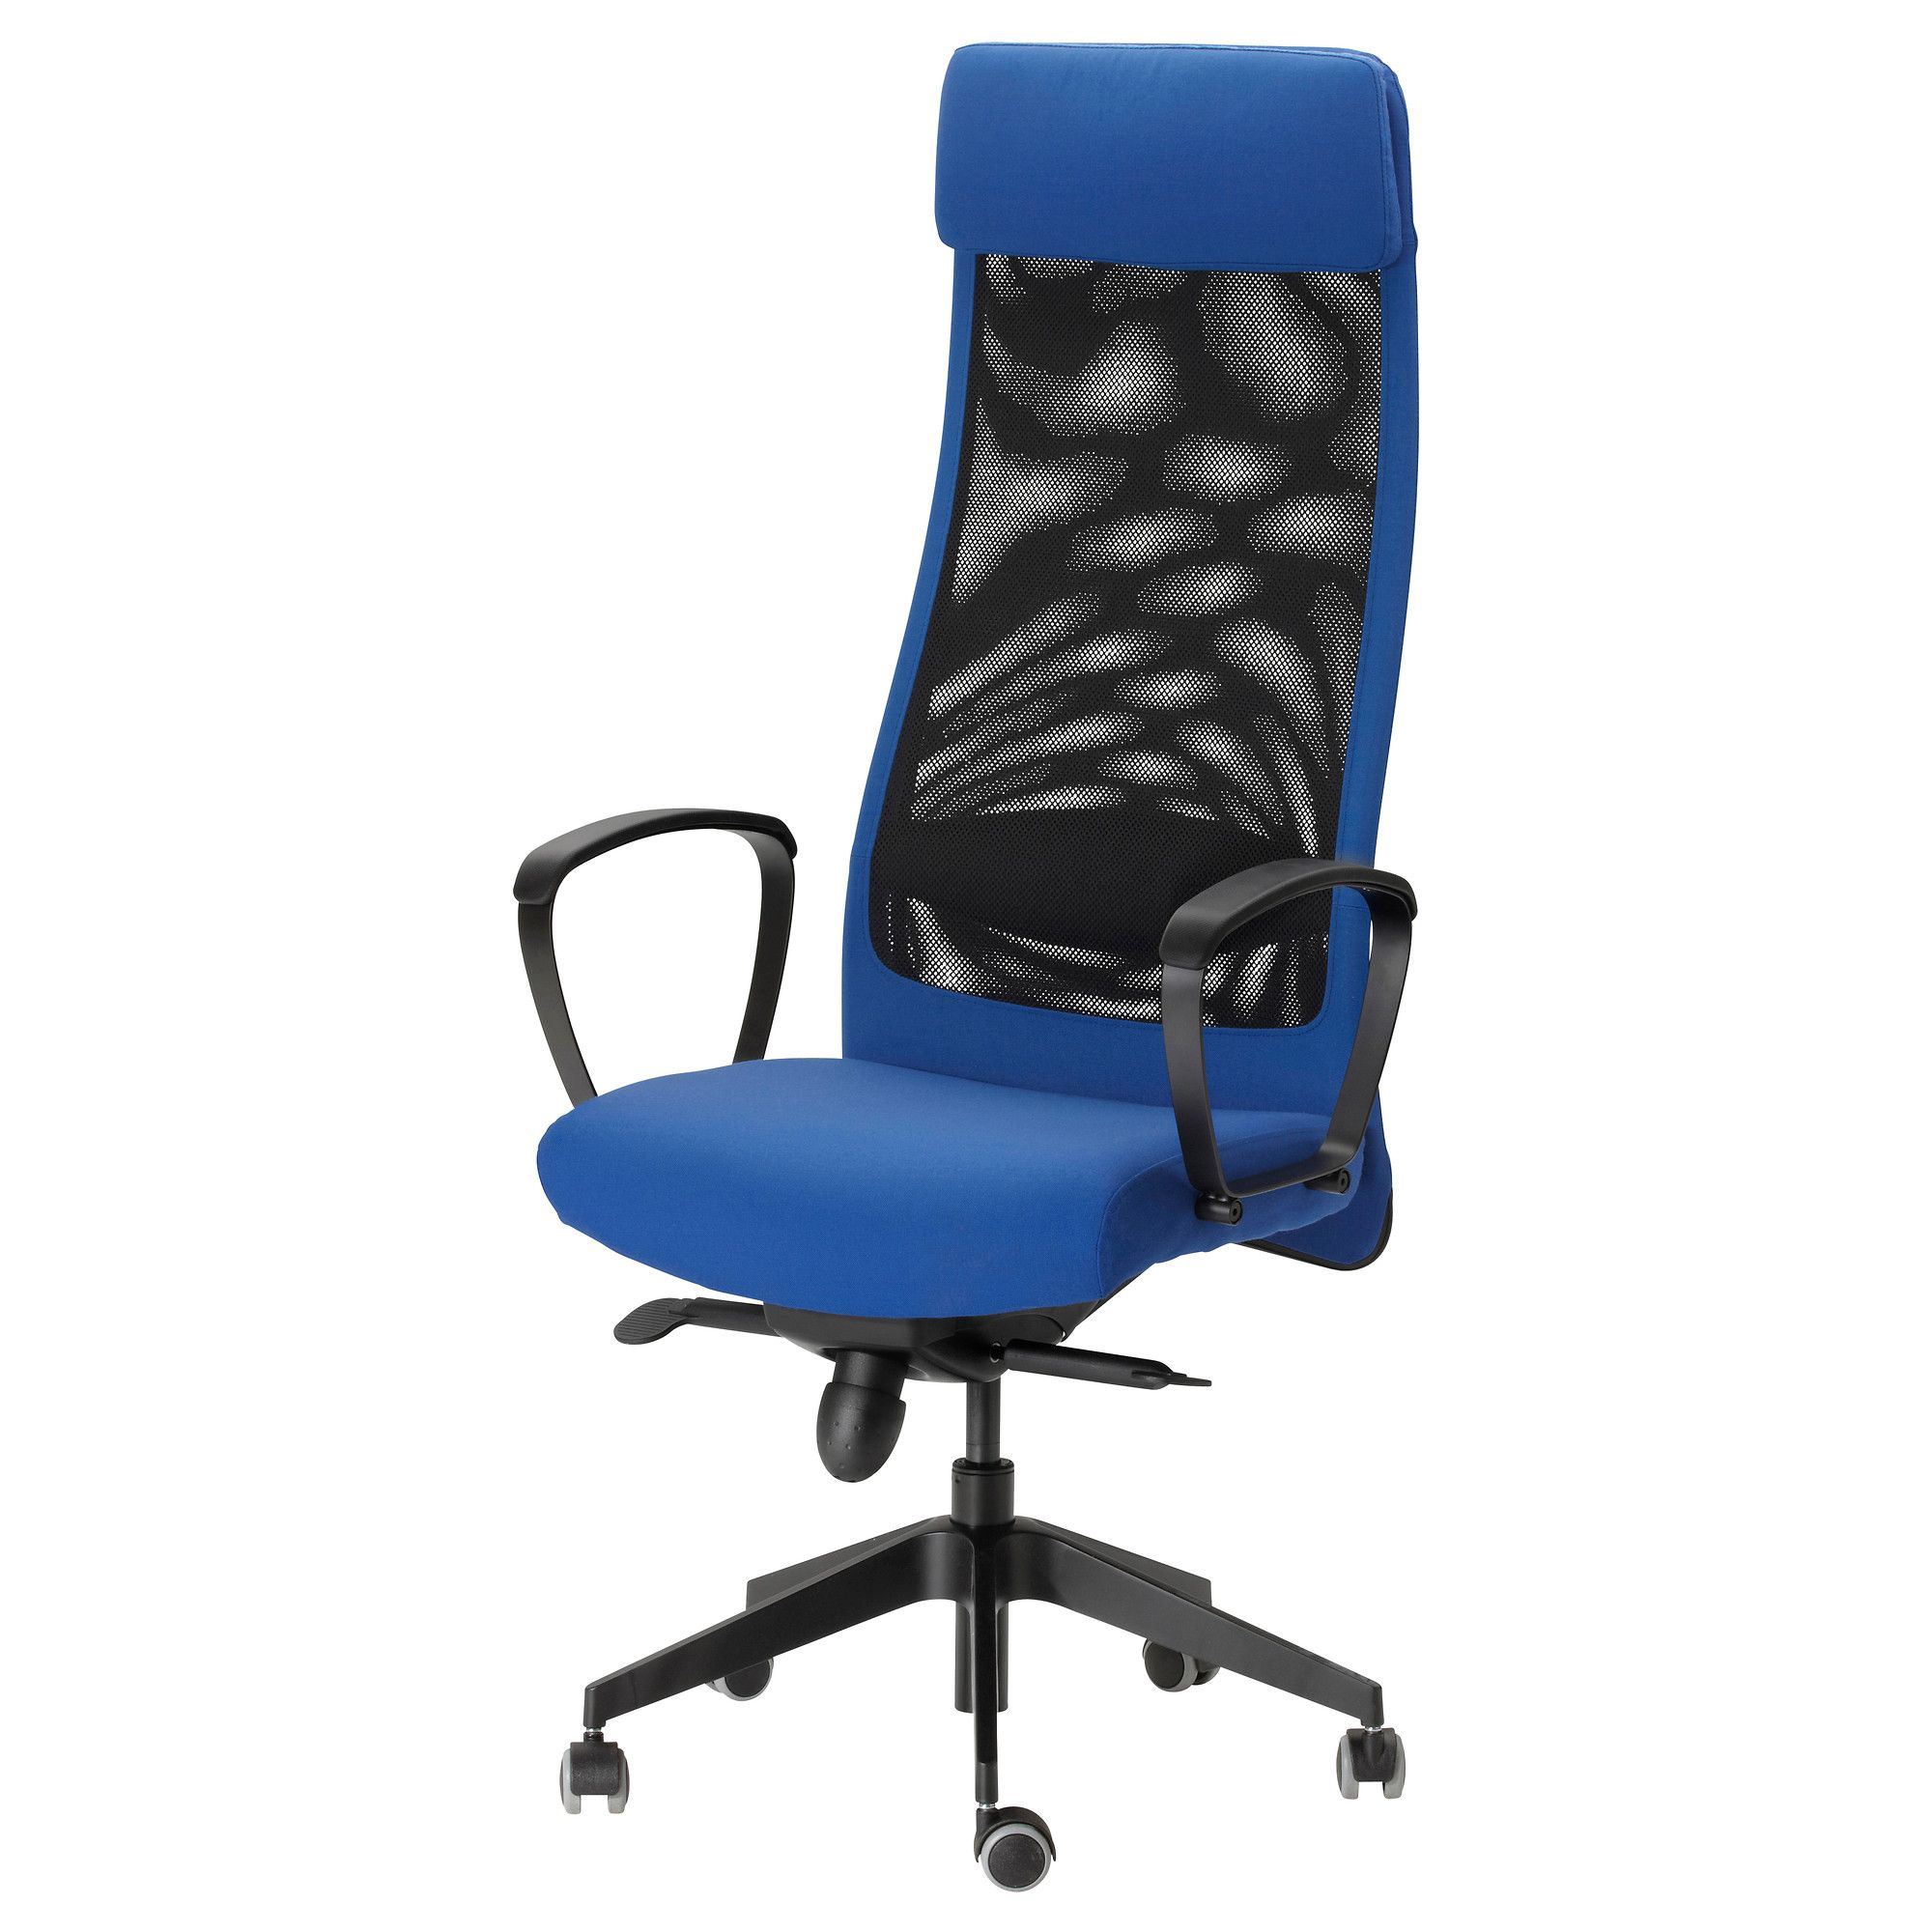 Ikea Us Furniture And Home Furnishings Ikea Office Chair Chair